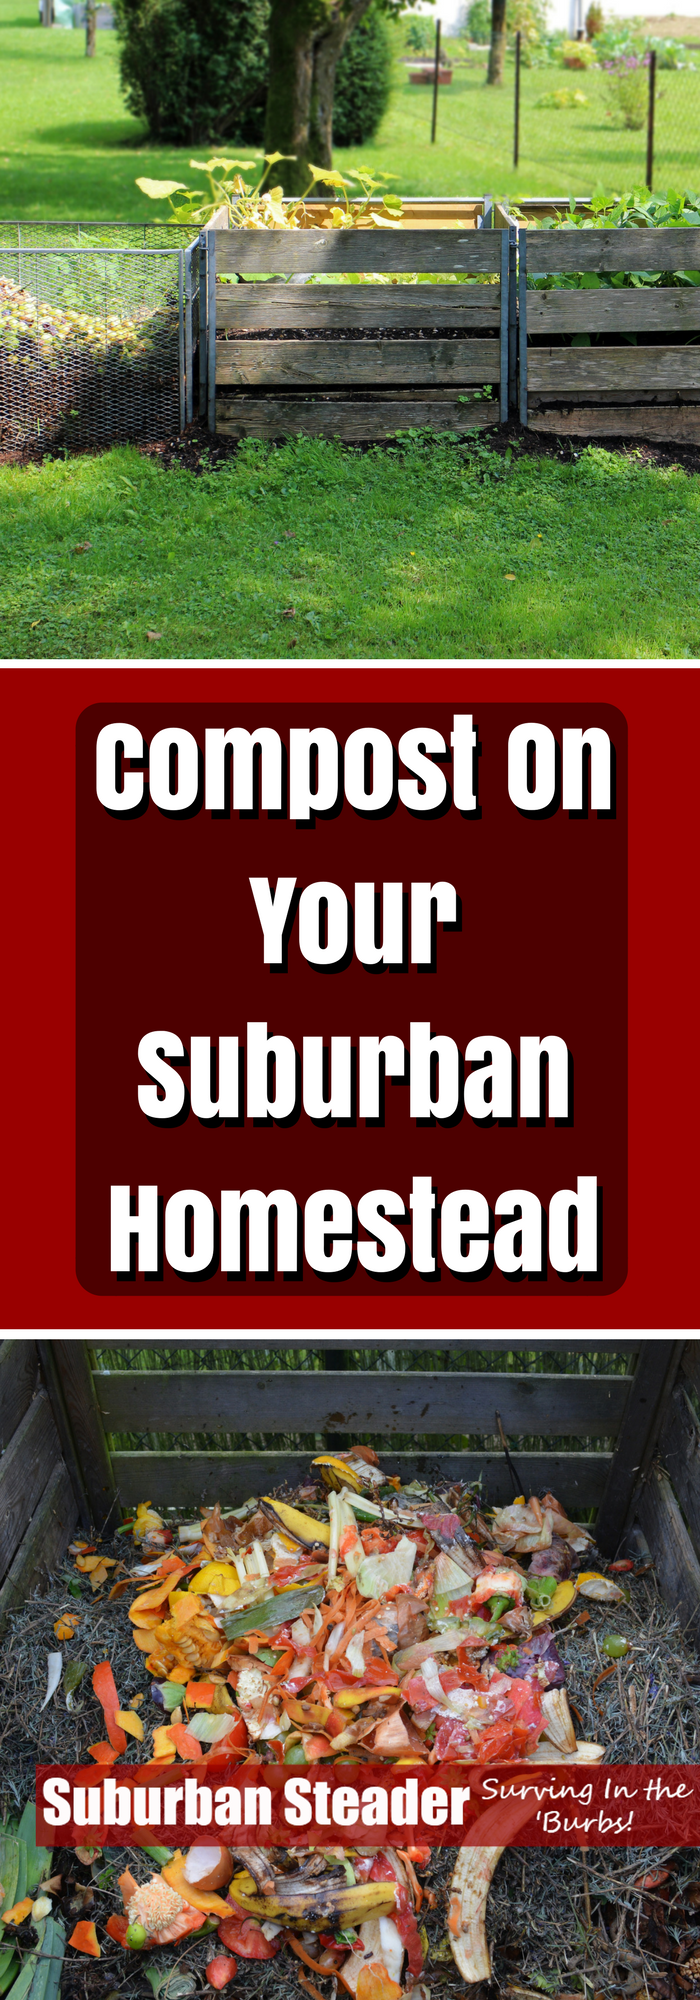 Compost is a wonderfully easy and inexpensive tool that every suburban homesteader should have in their toolbox. We'll teach you how to do it right here.